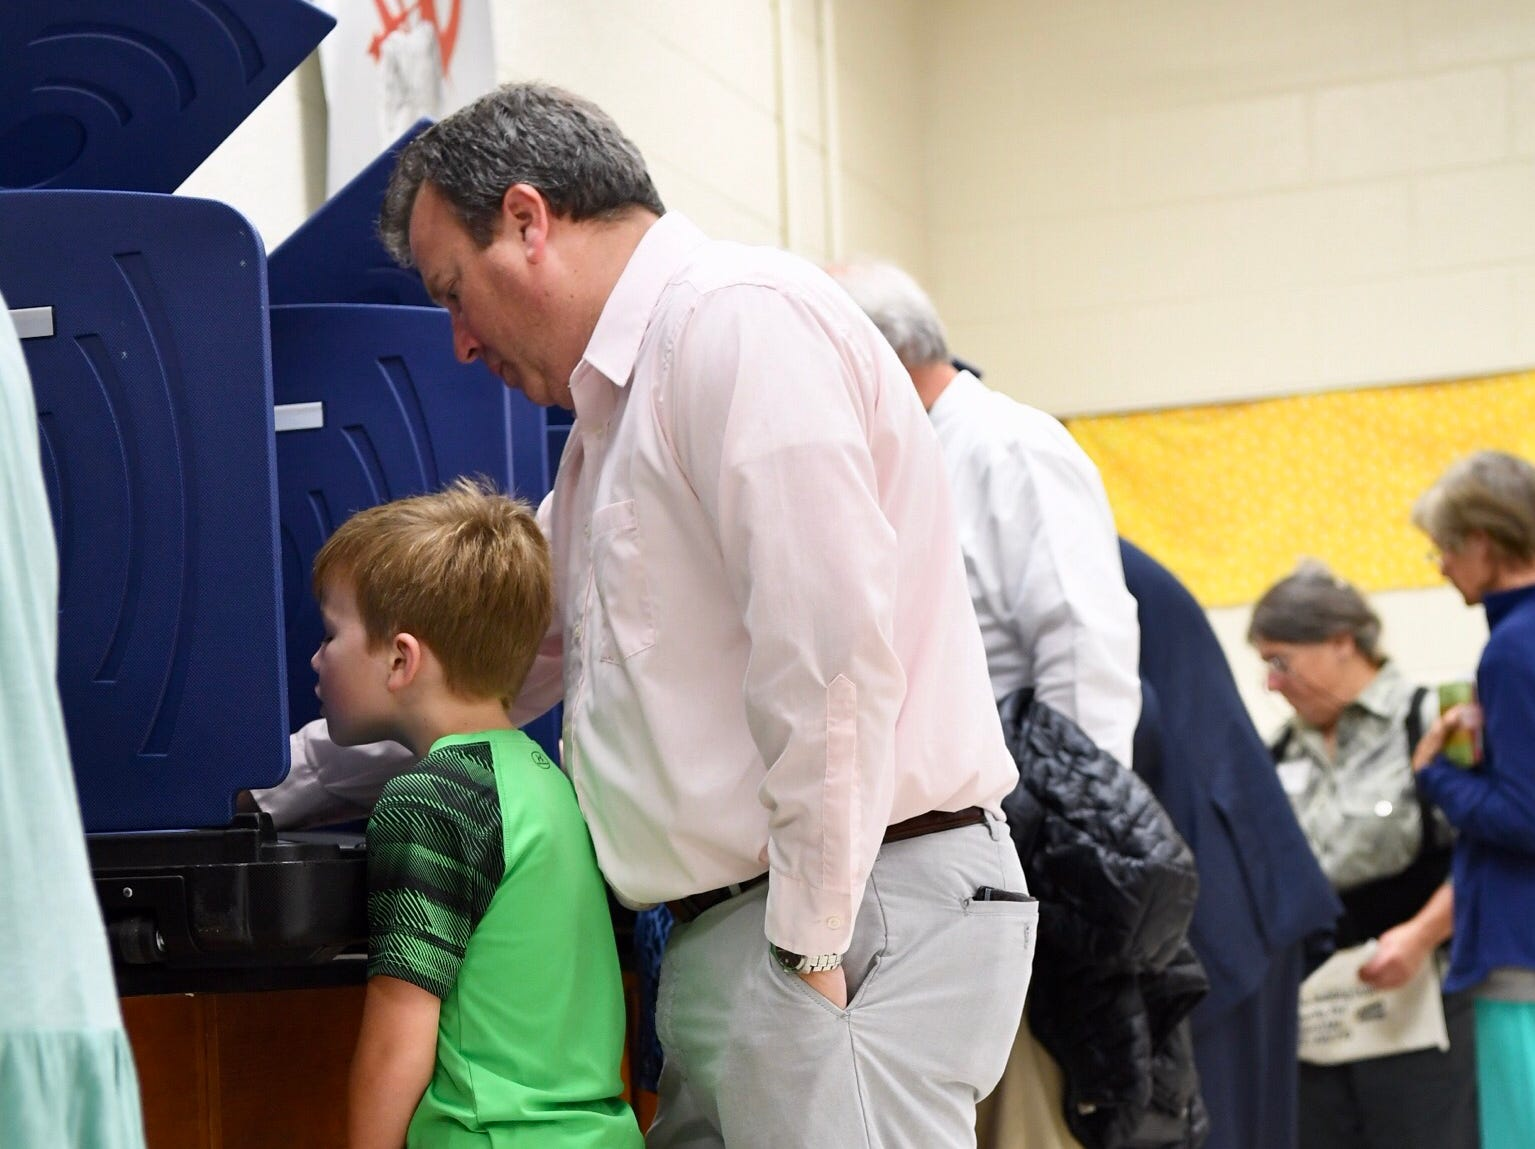 Dave Brousseau votes with his son Davis observing on his toes at the McCants Muddle School precinct in Anderson on Tuesday.